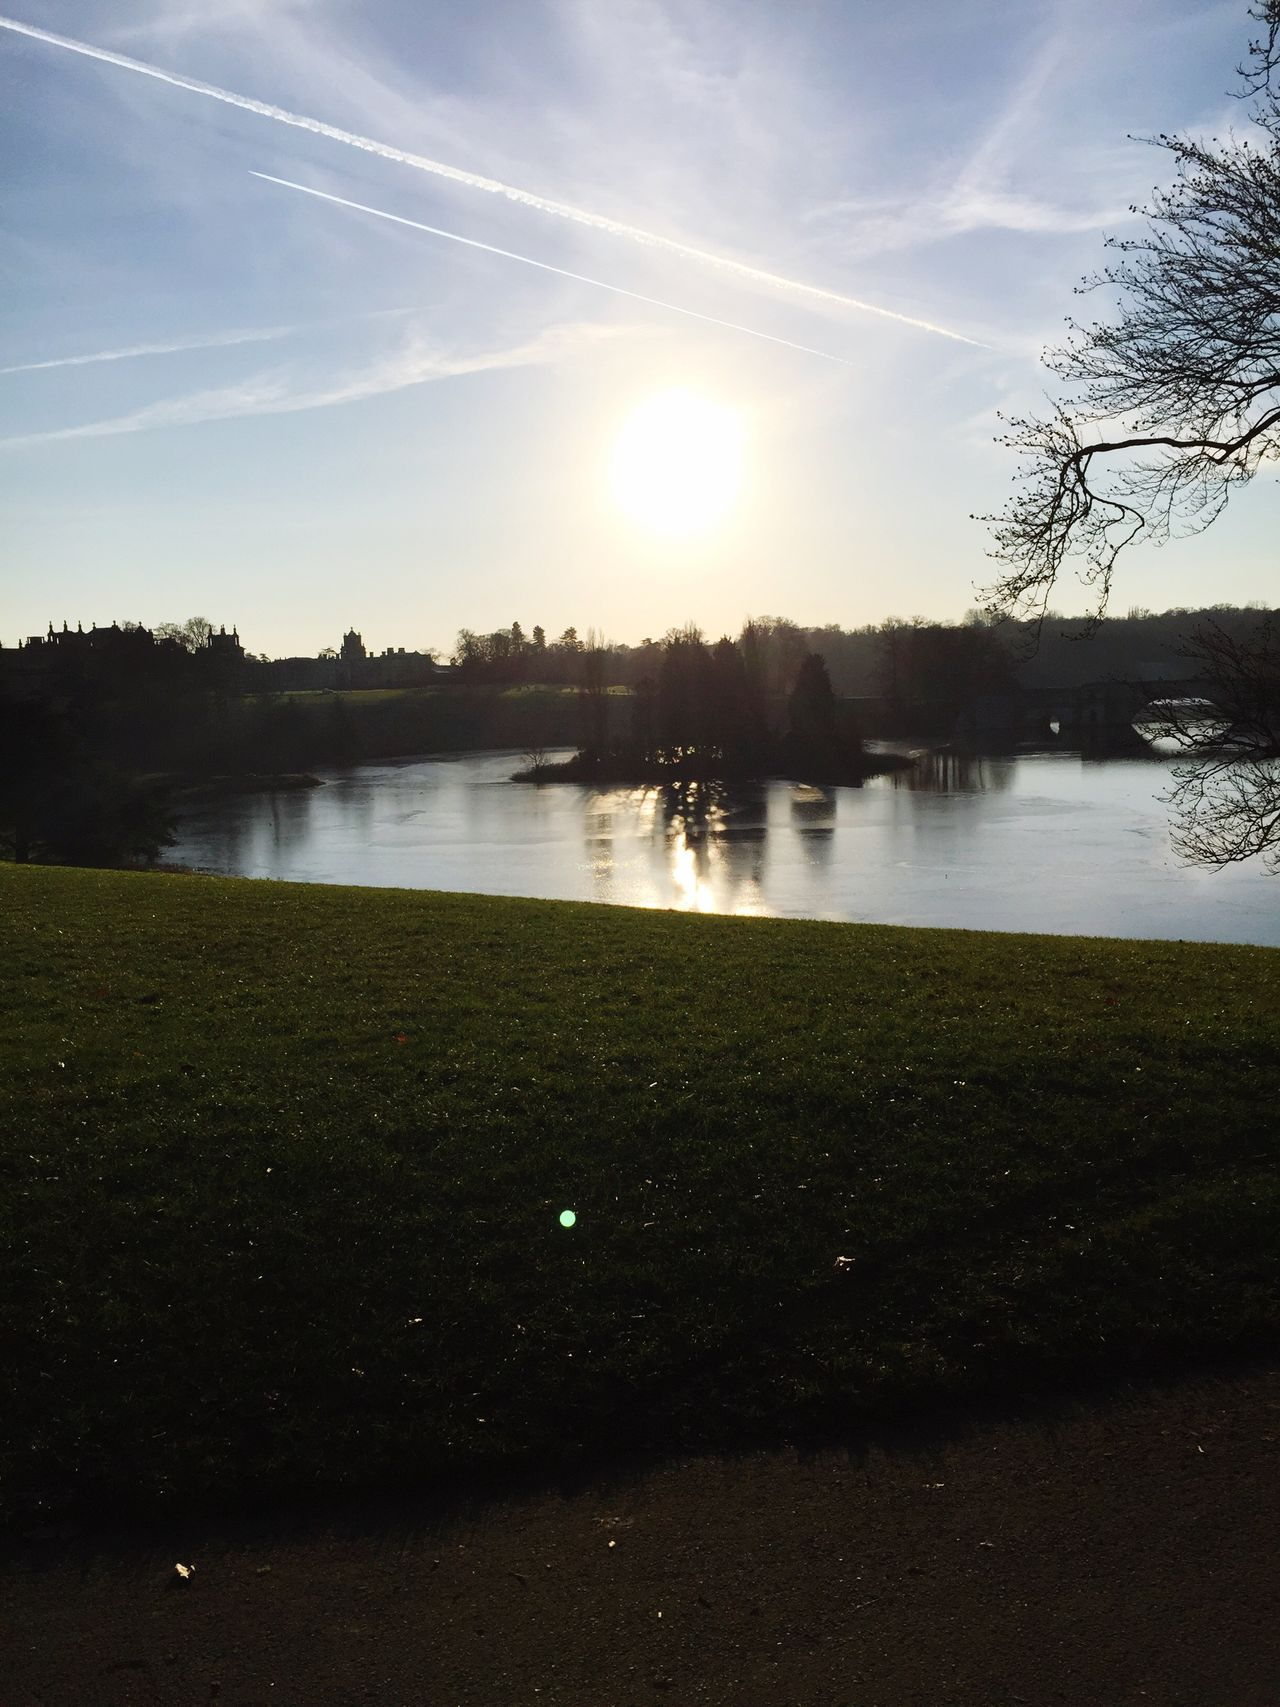 Blenheimpalace Garden Lake View Island Oxfordshire Oxford Royal Daytime Photography